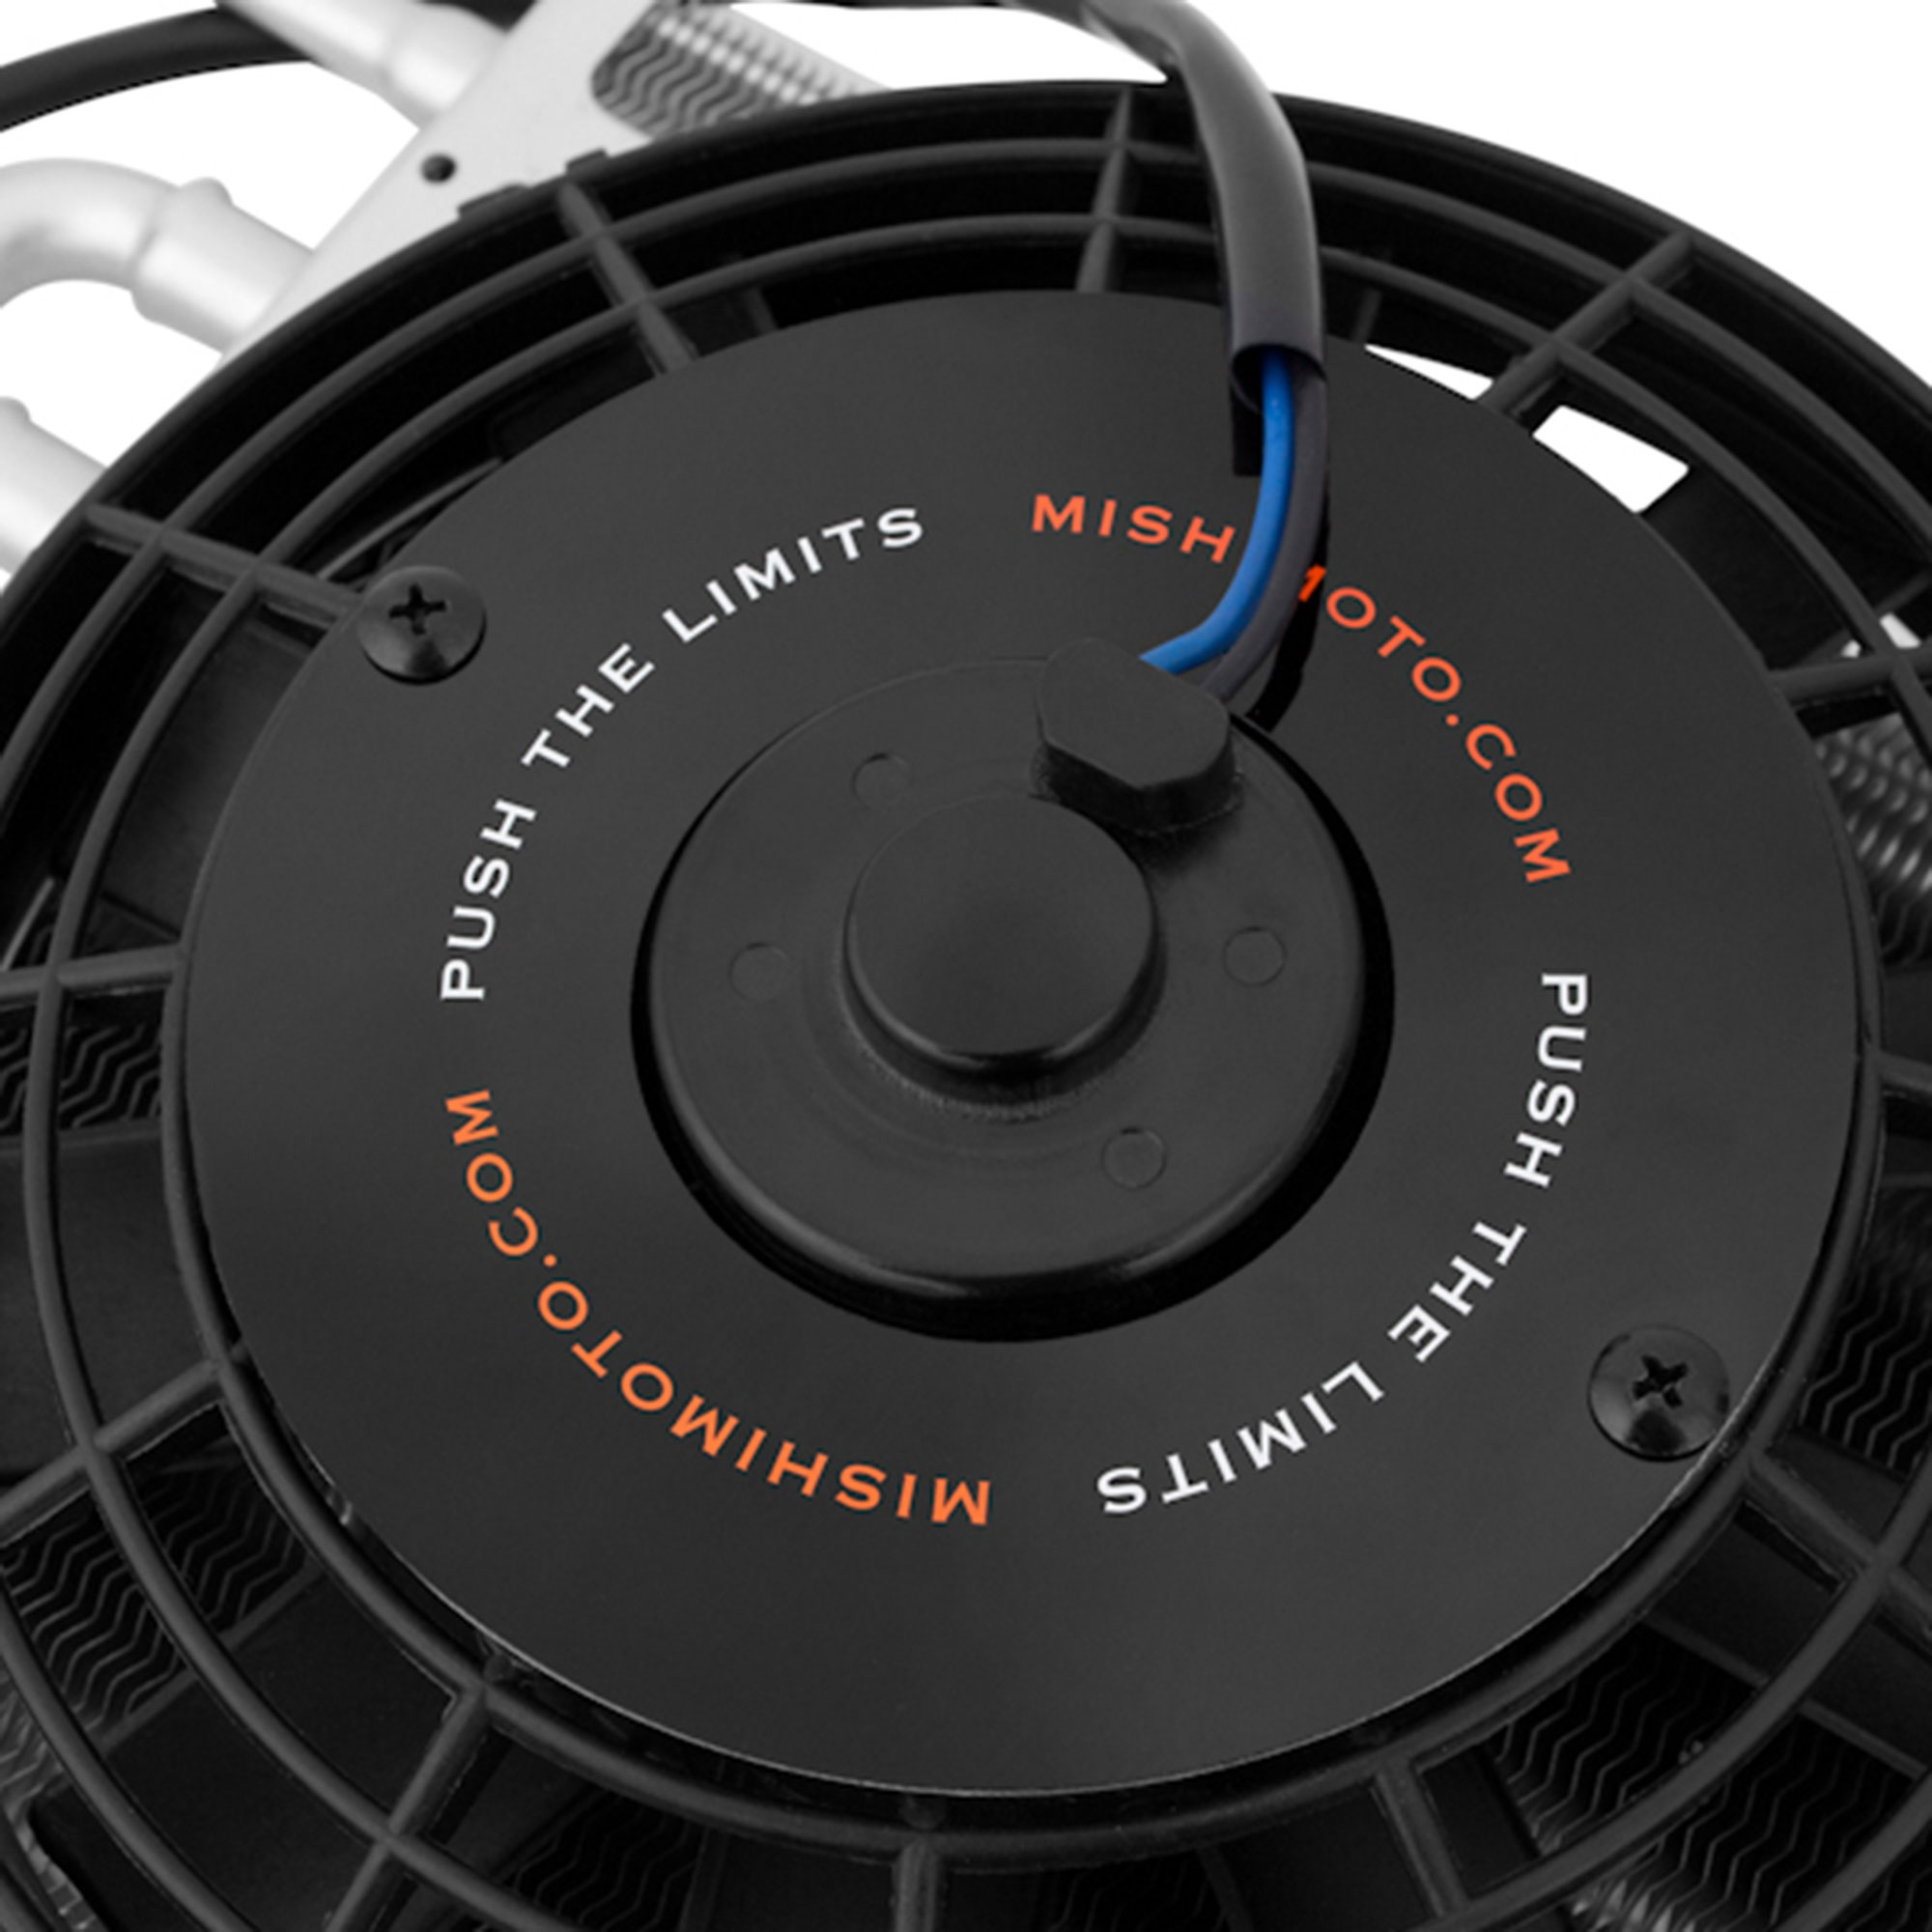 Mishimoto Heavy Duty Car Transmission Cooler Cooling With